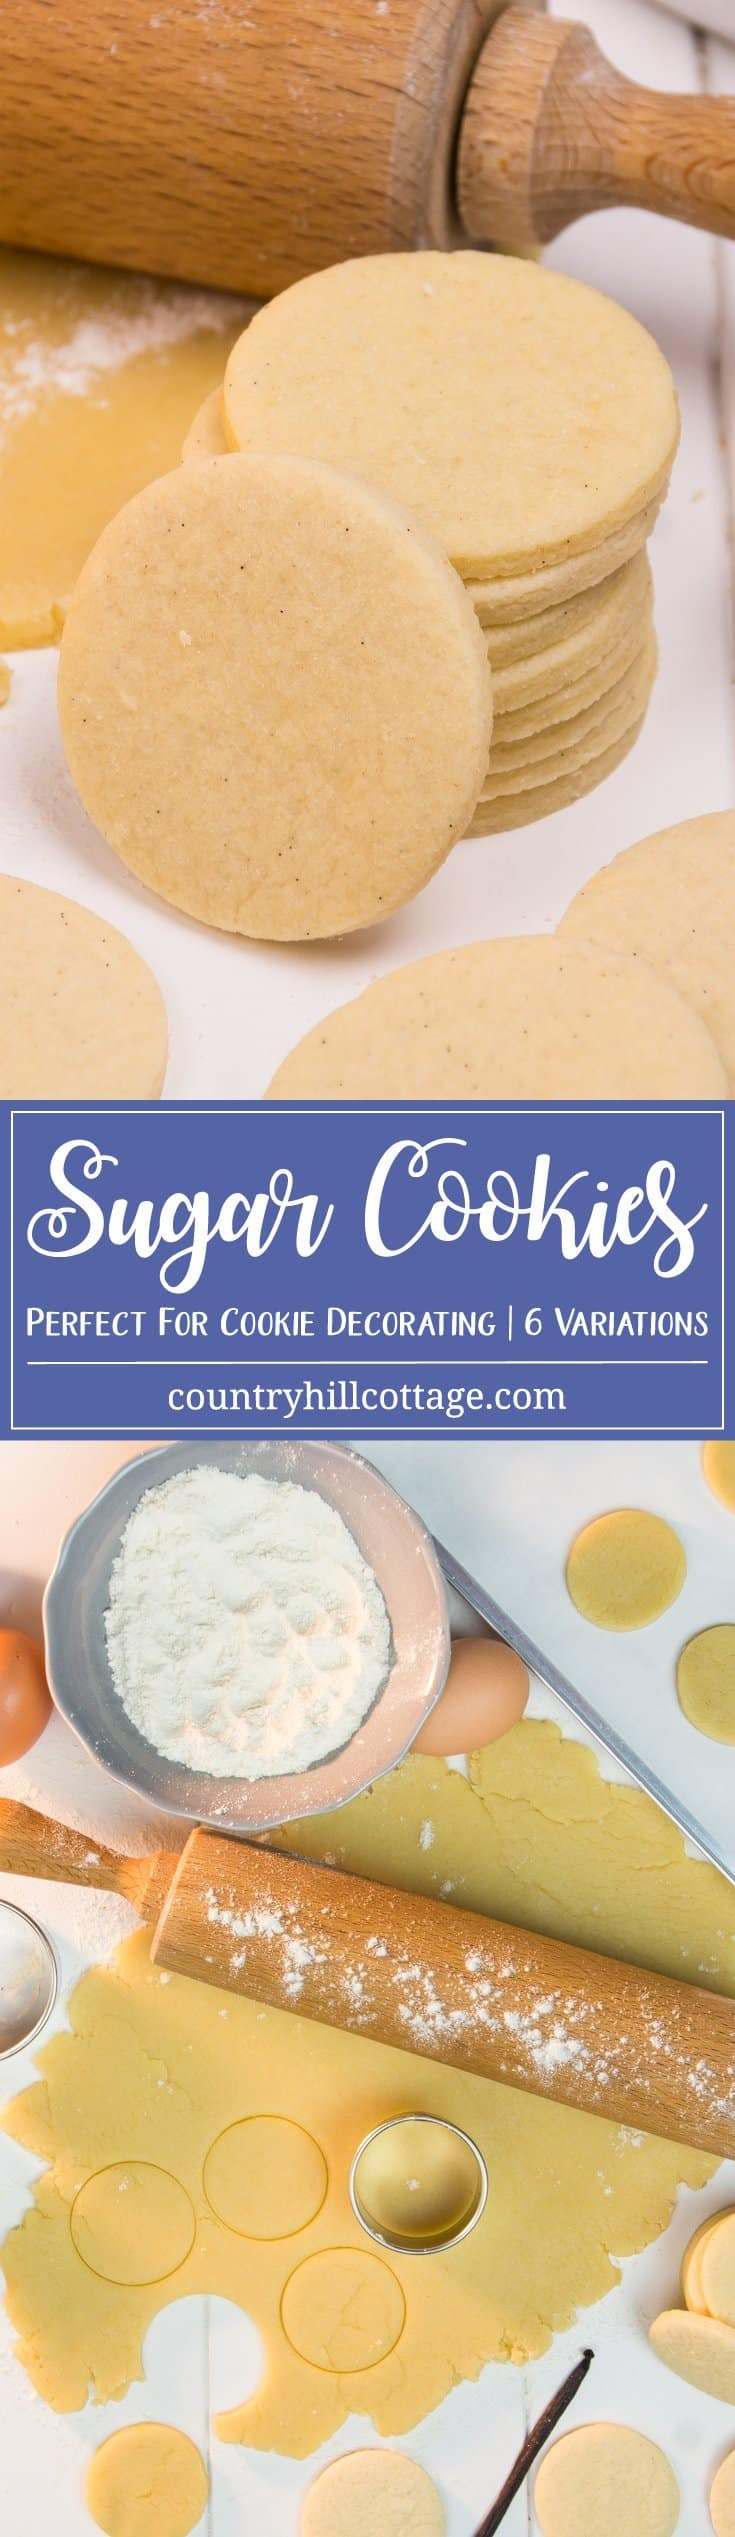 Soft, light and sweetly vanilla - this is our go-to recipe for sugar cookies. These cookies taste delicious on their own and are perfect for any cookie decorating project as they will keep their shape quite well. The dough is perfect for rolling out and cutting out cookies. We also share our favourite flavour variations for even more possibilities. #sugarcookies #cookierecipe #recipe | countryhillcottage.com